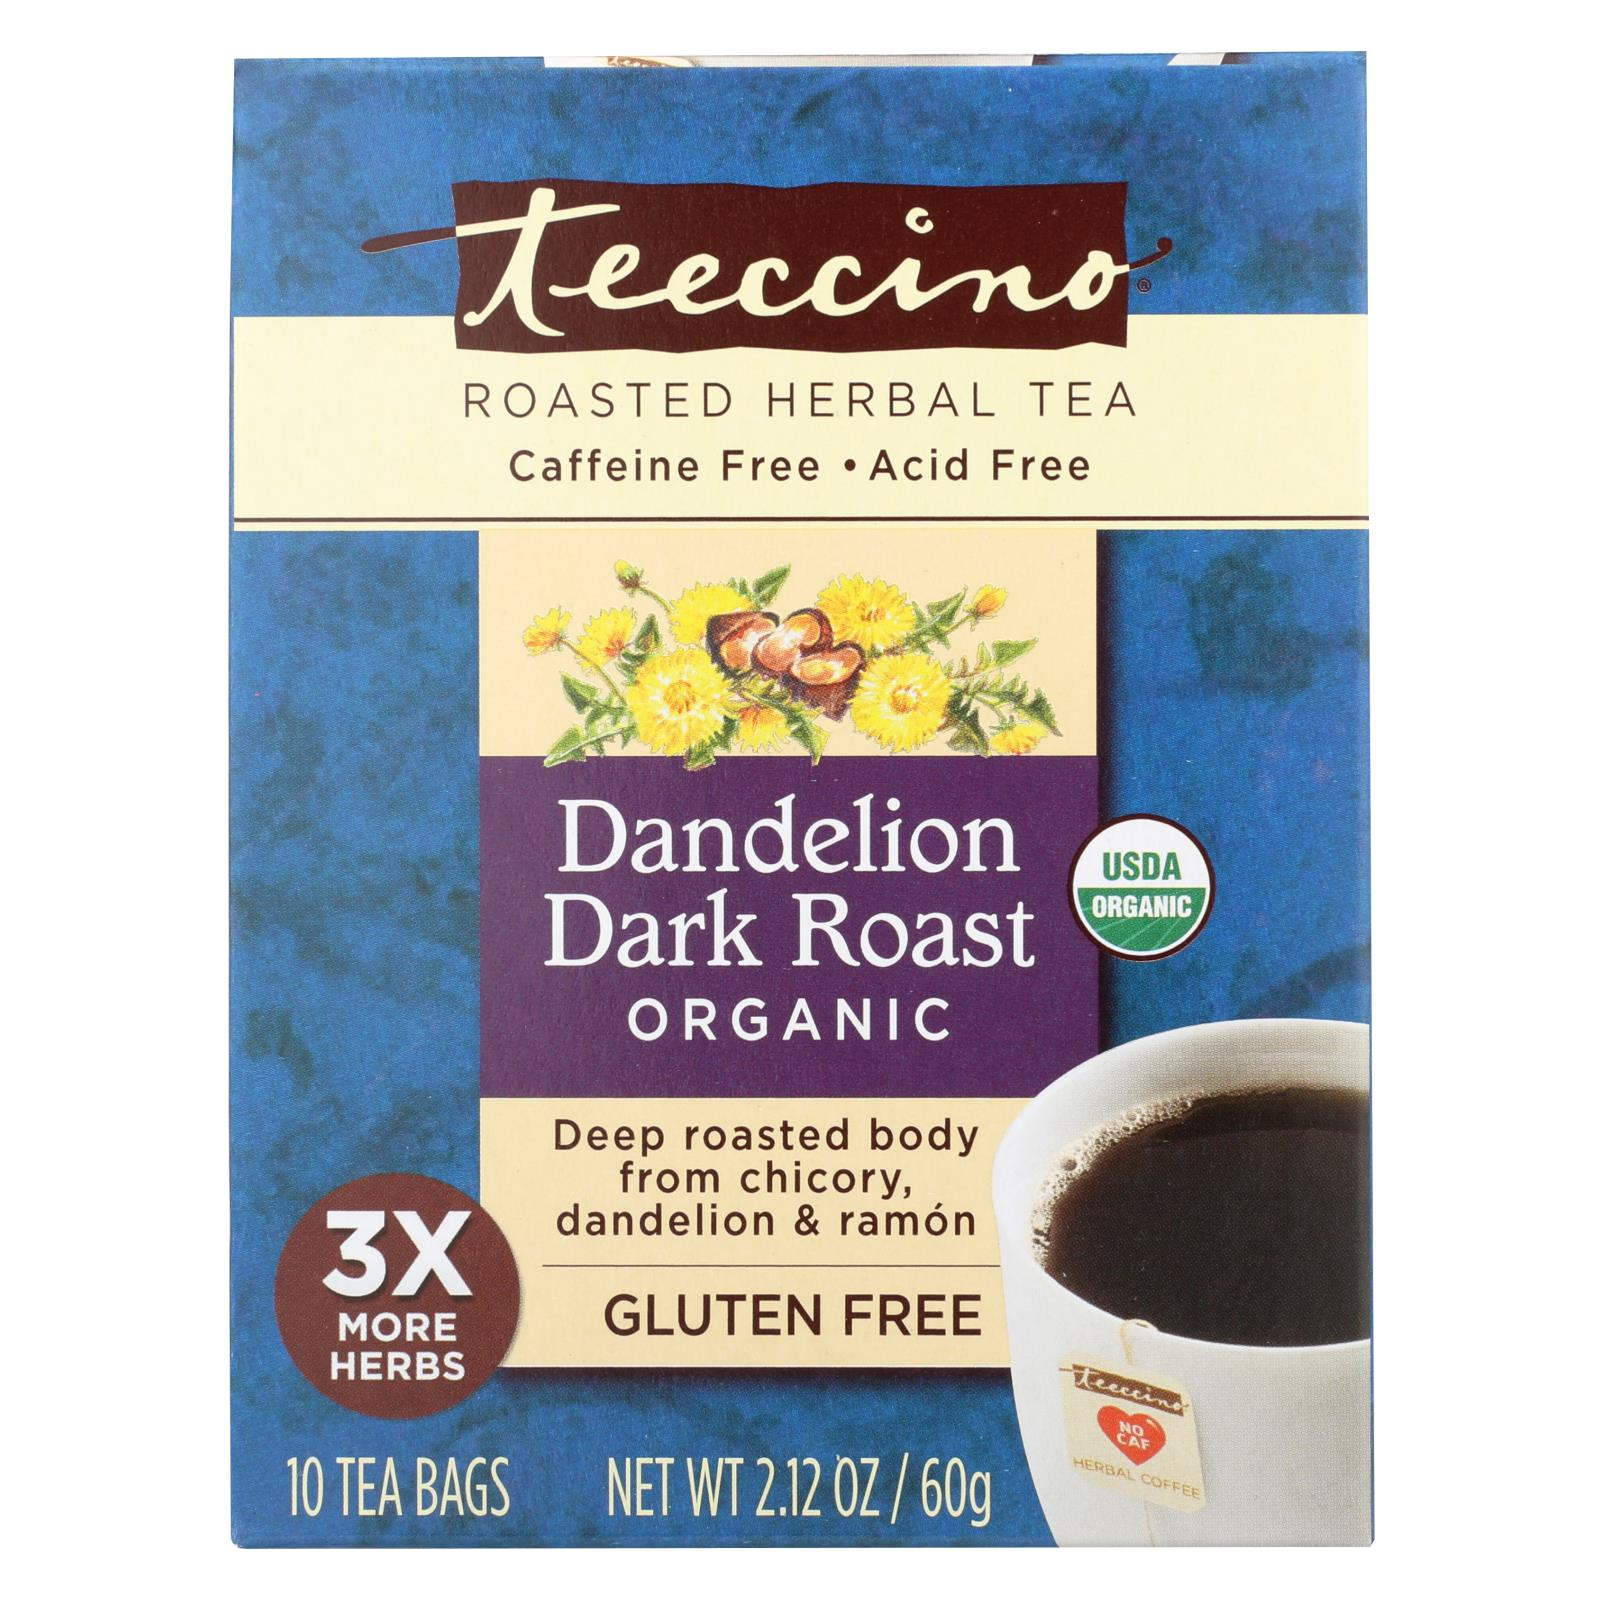 Buy Teeccino Coffee Tee Bags - Organic - Dandelion Dark Roast Herbal - 10 Bags - Beverages from Veroeco.com